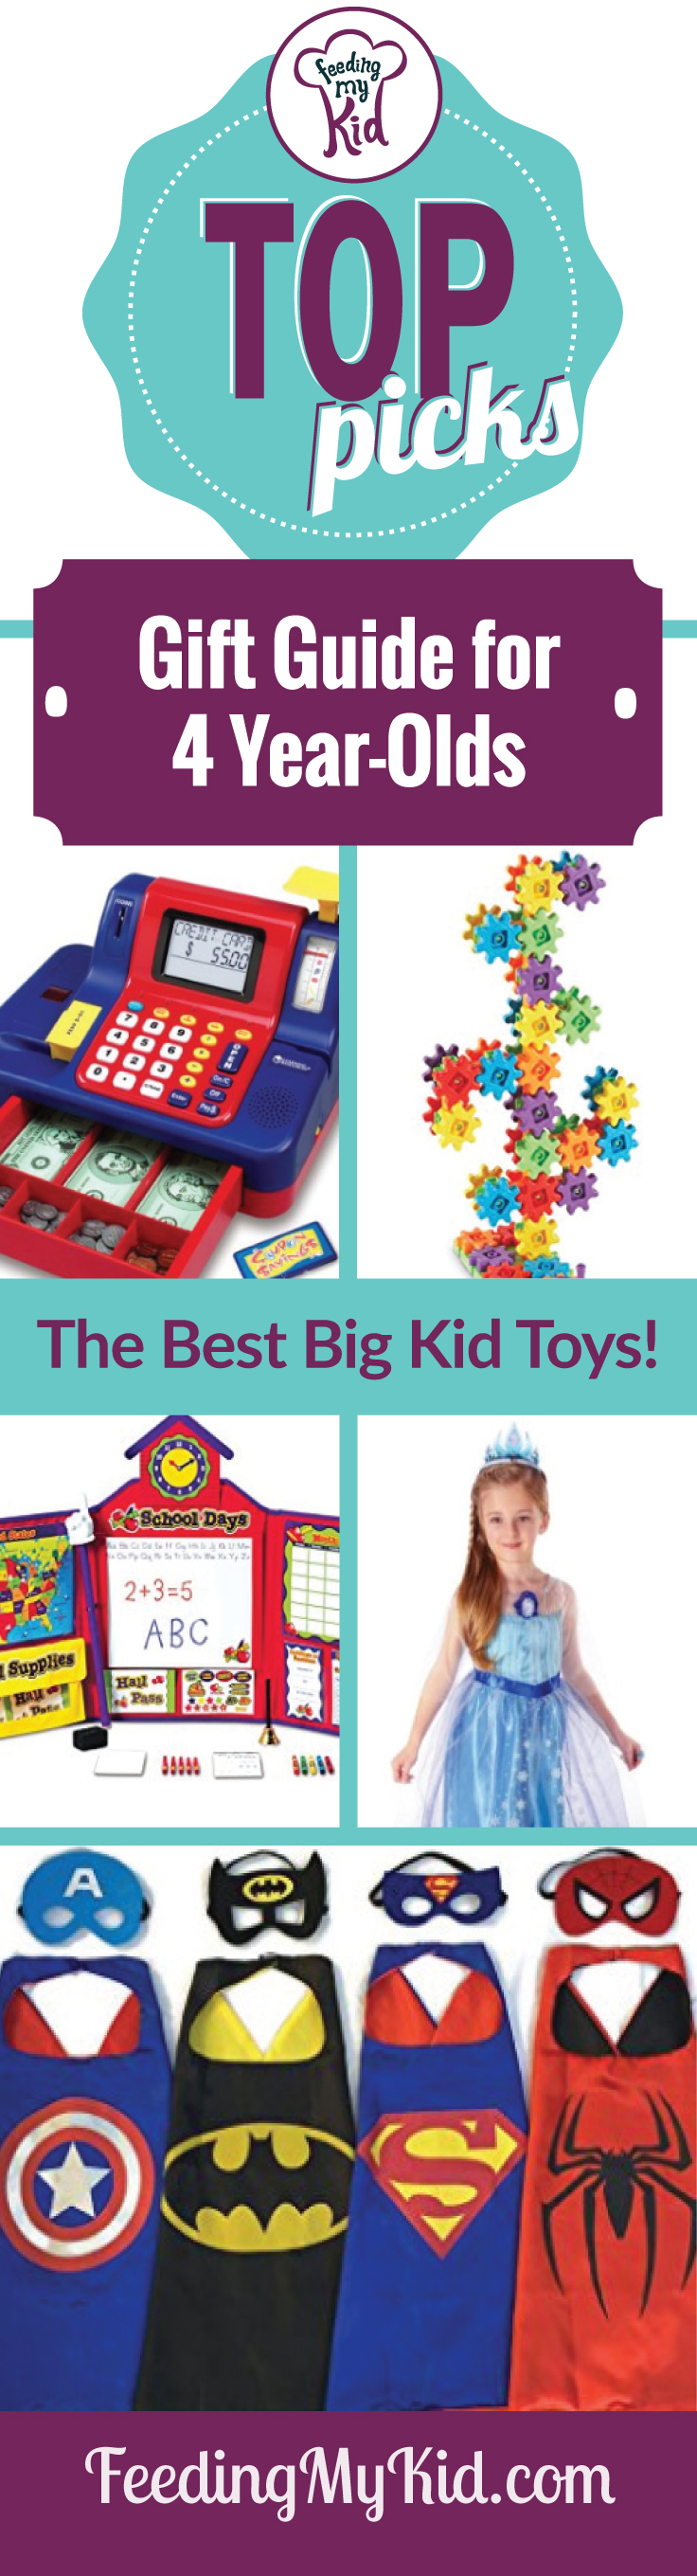 Best Toys for 4 Year Olds Our Gift Guide for Parents